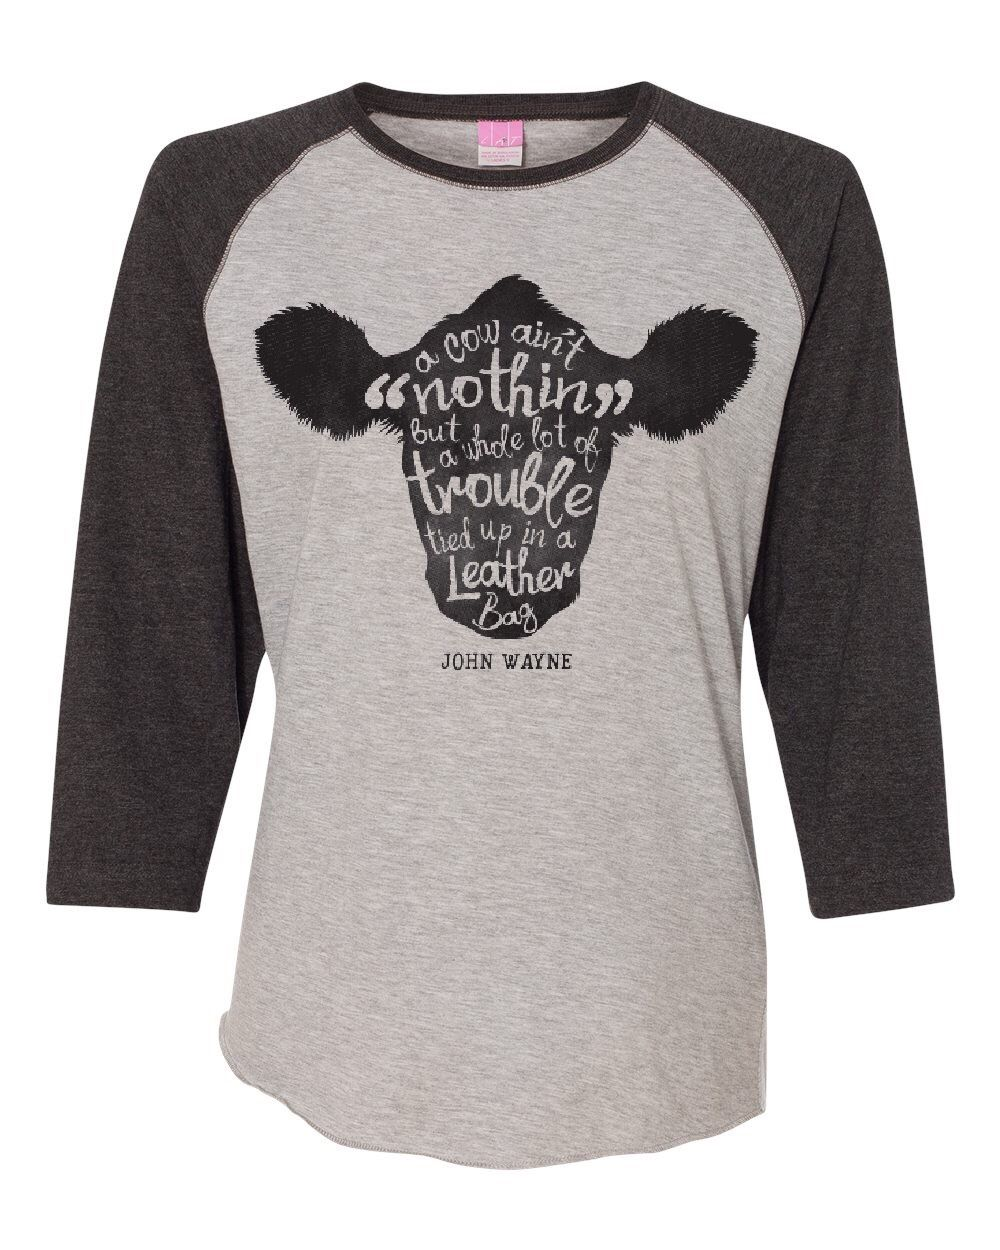 Cow Trouble Raglan - Livestock Showgirls 121f5a5f5a14